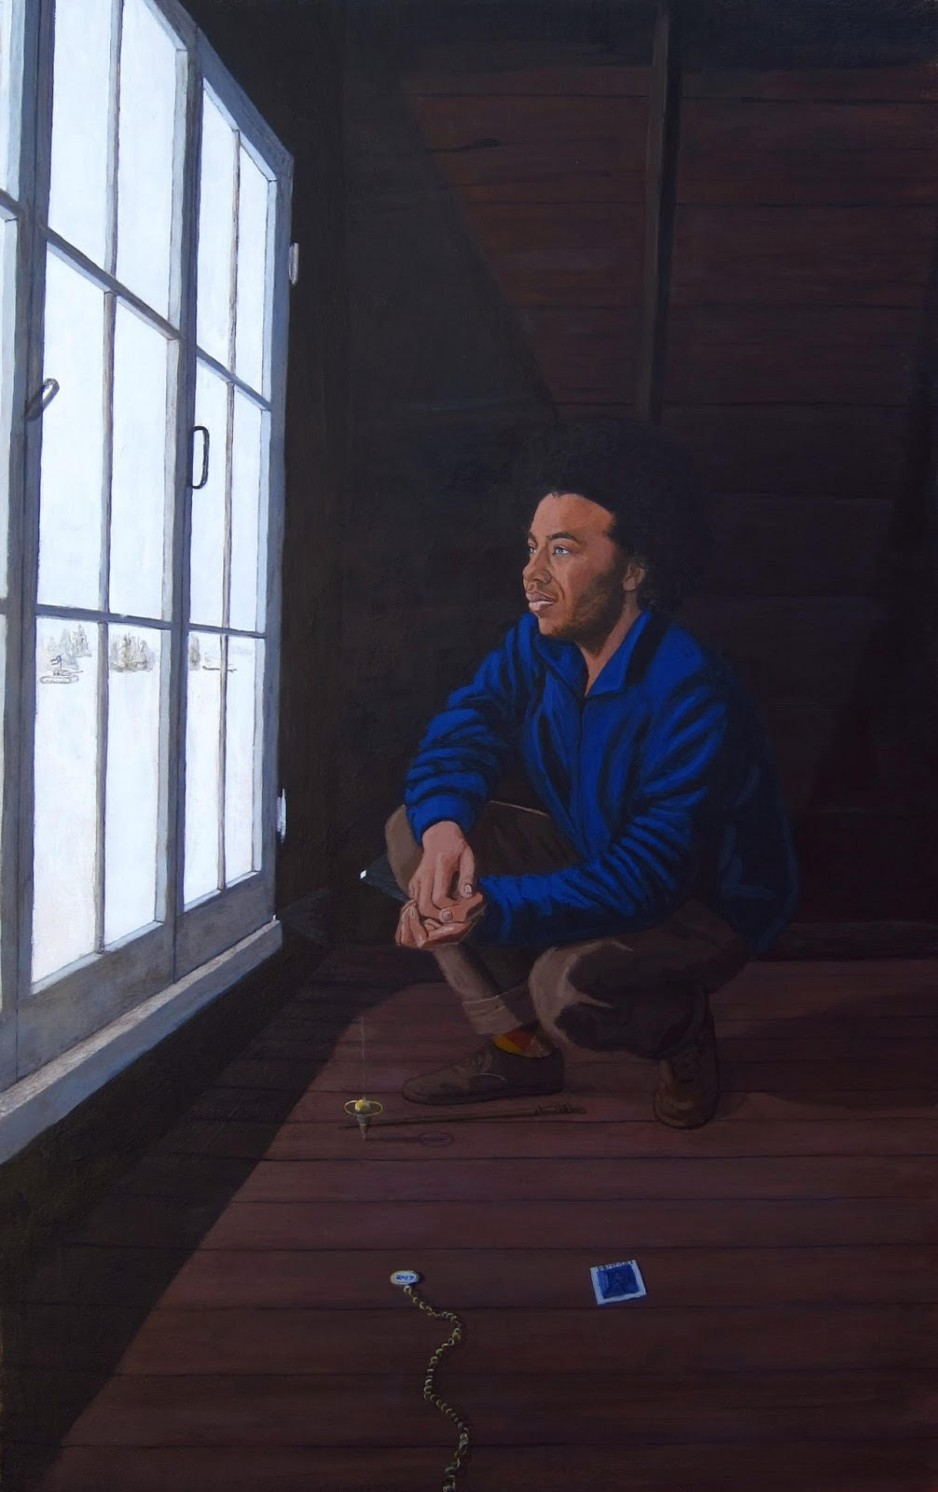 A painting of a young black man with a pocket watch looking out the window crouched down.